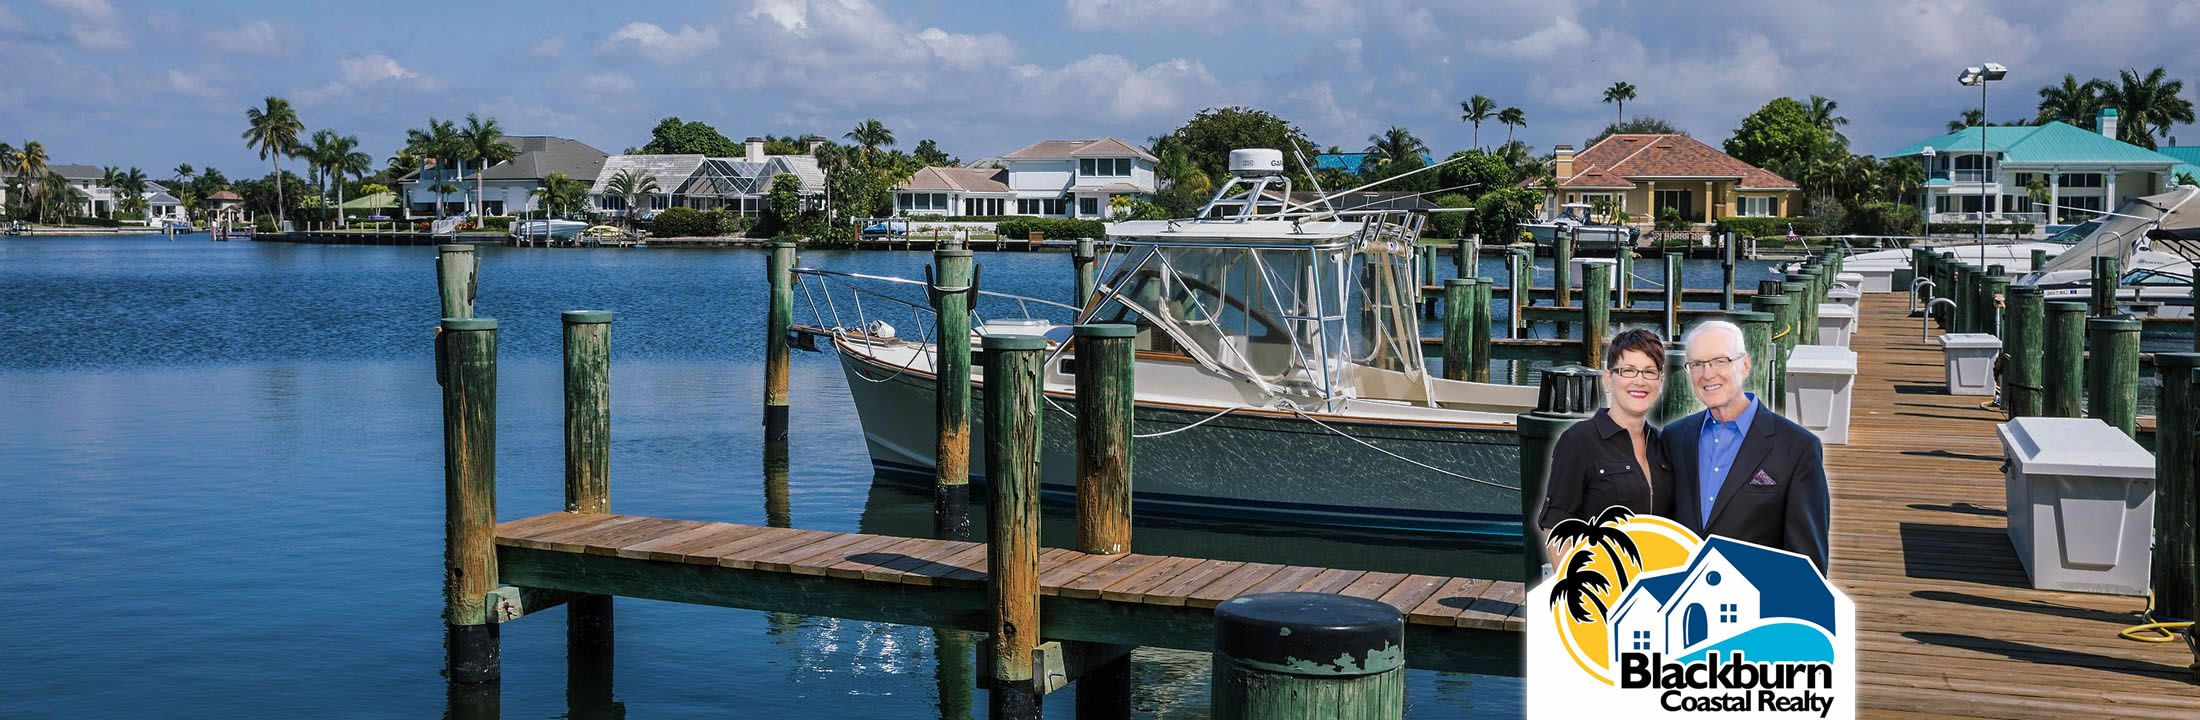 The Gulf Beaches of Tampa Bay Real Estate and Homes